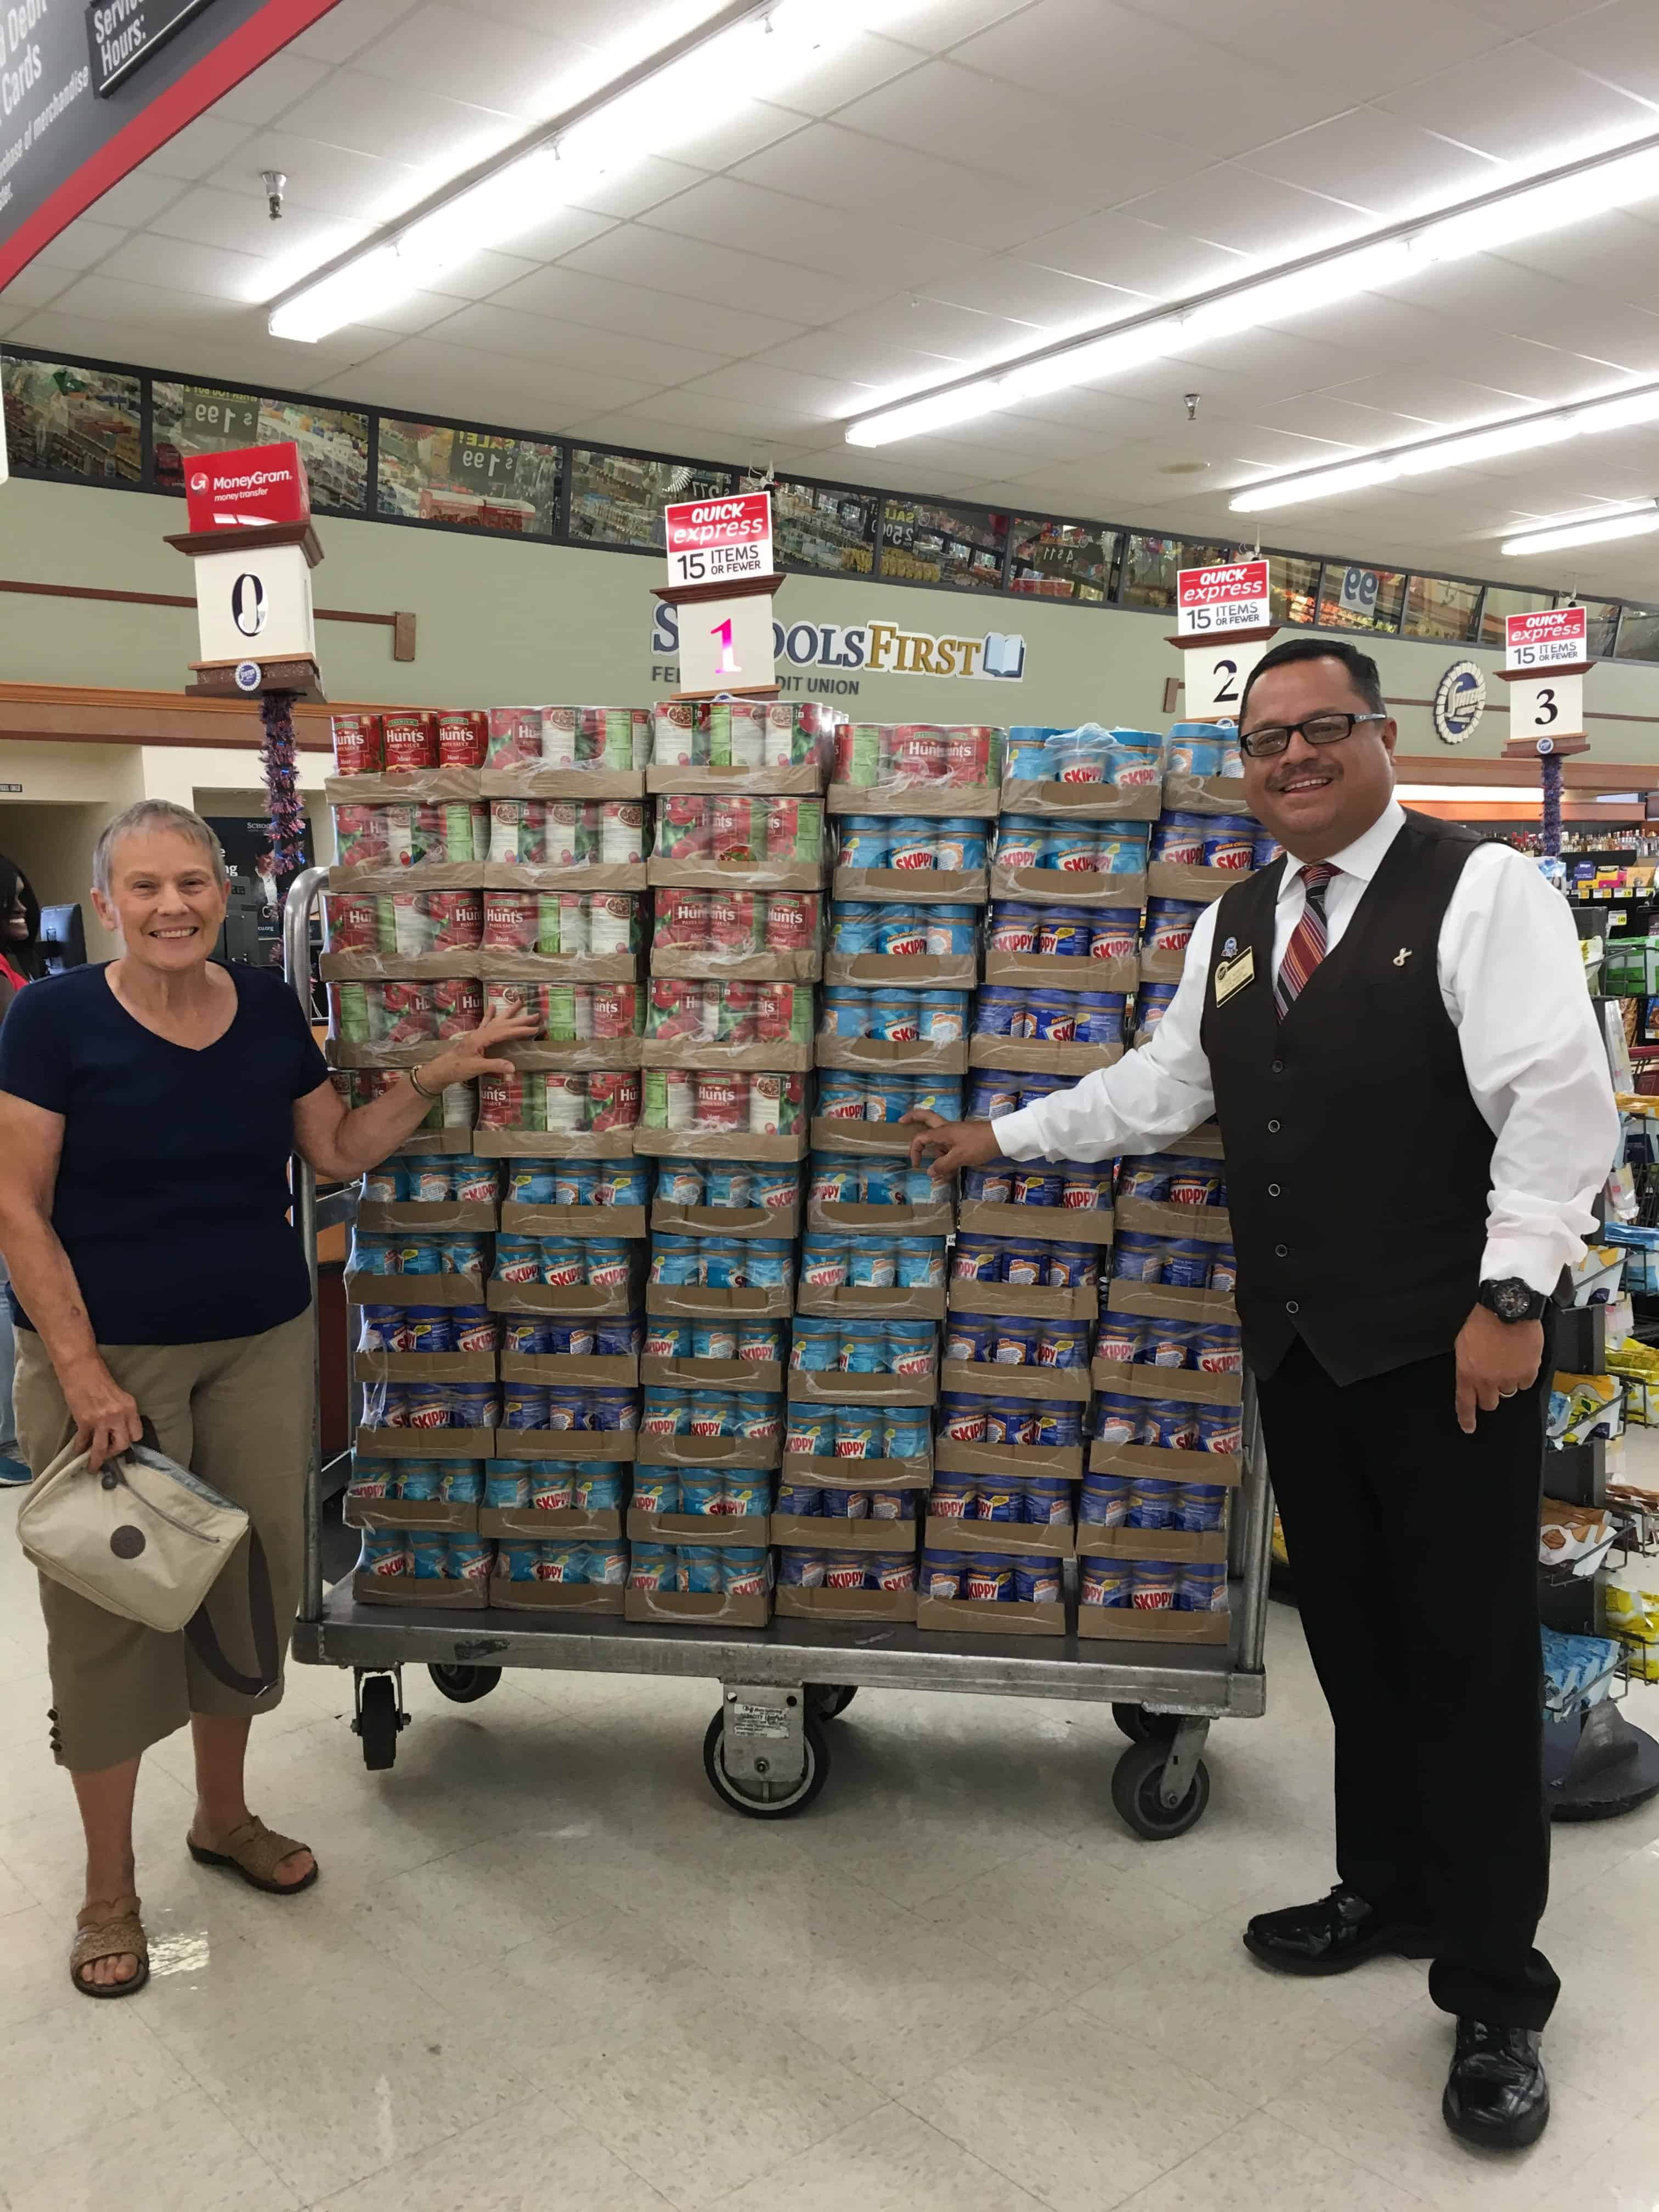 A woman and a man stand on each end of large stack of cases of peanut butter